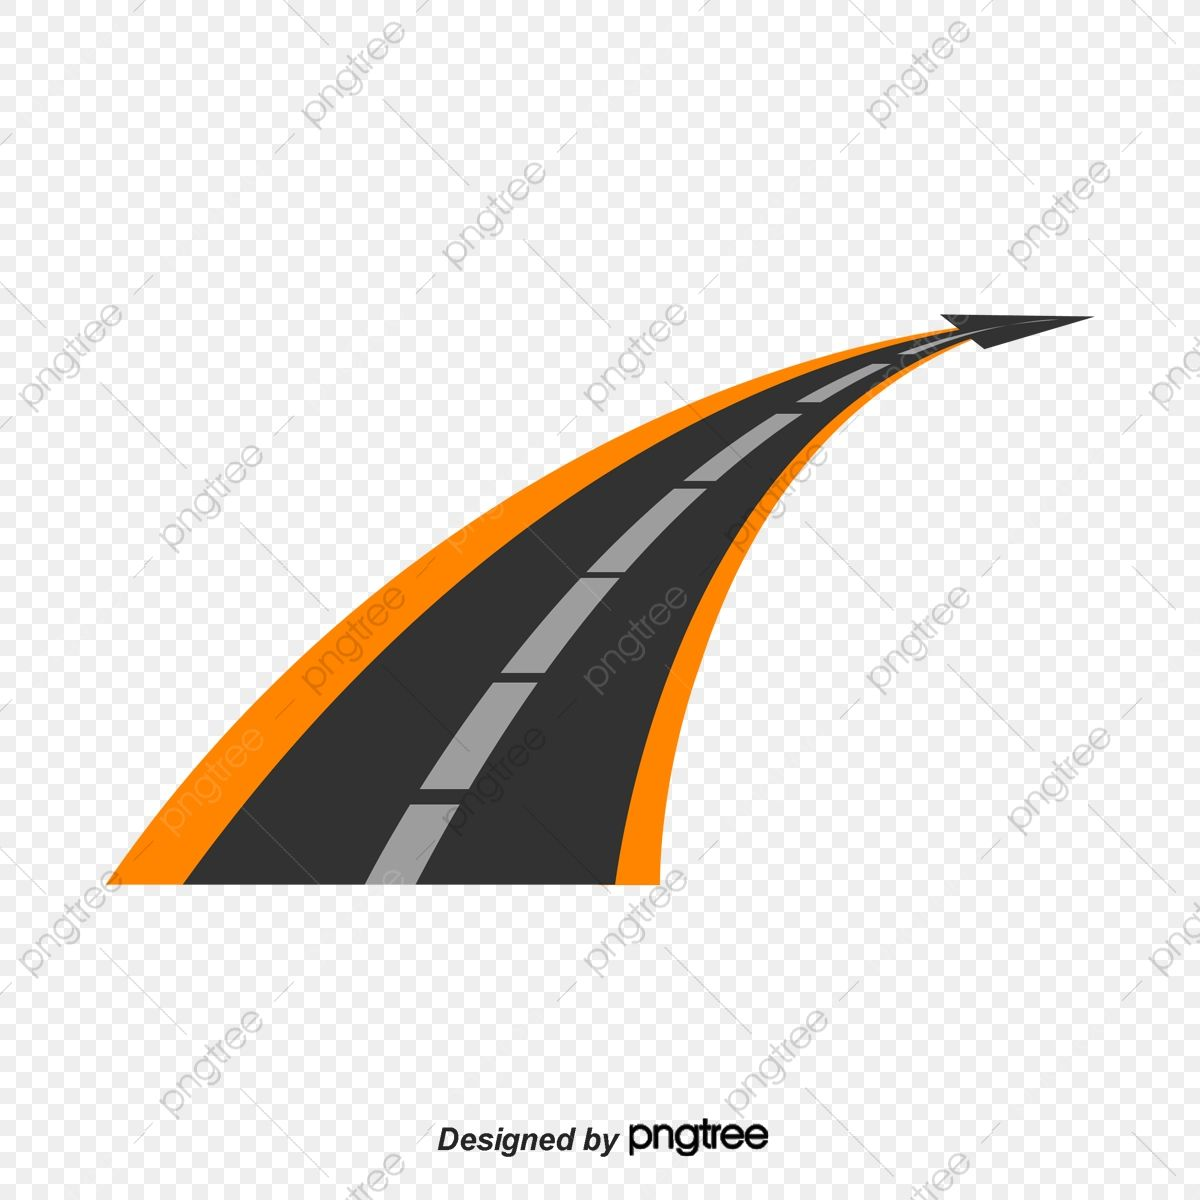 Design Of Road Signs Road Clipart Logo Design Map Png Transparent Clipart Image And Psd File For Free Download Camera Logos Design Clipart Images Adventure Creative